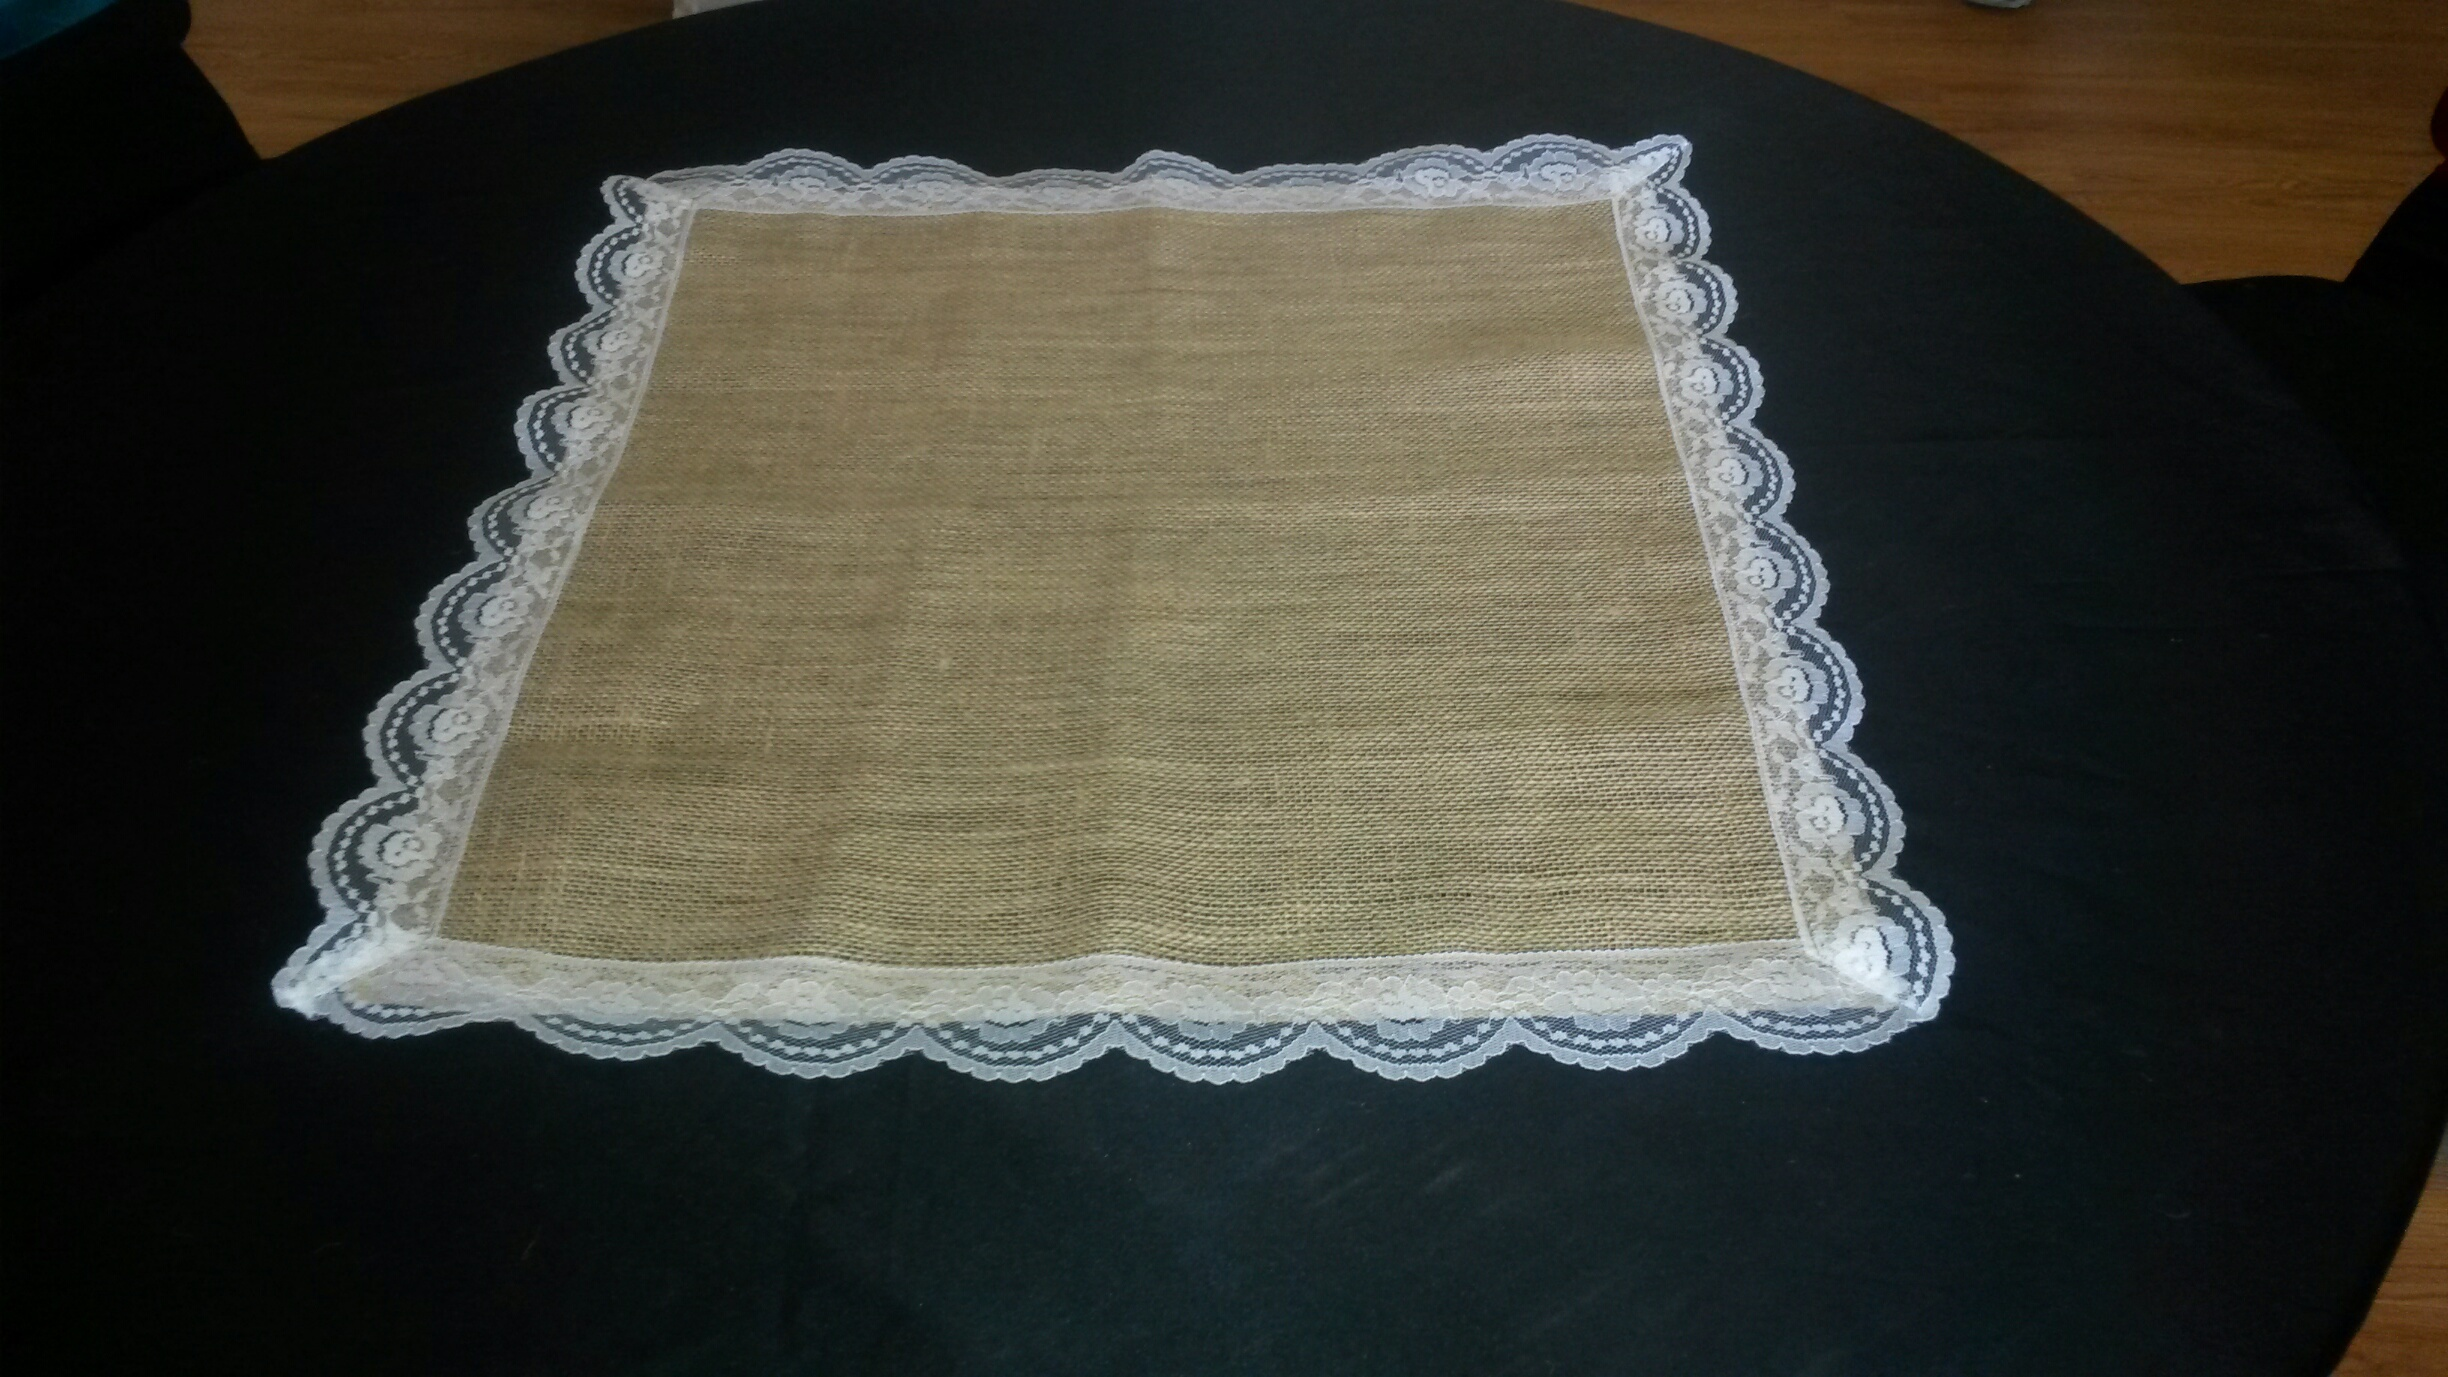 Burlap Square with White Lace